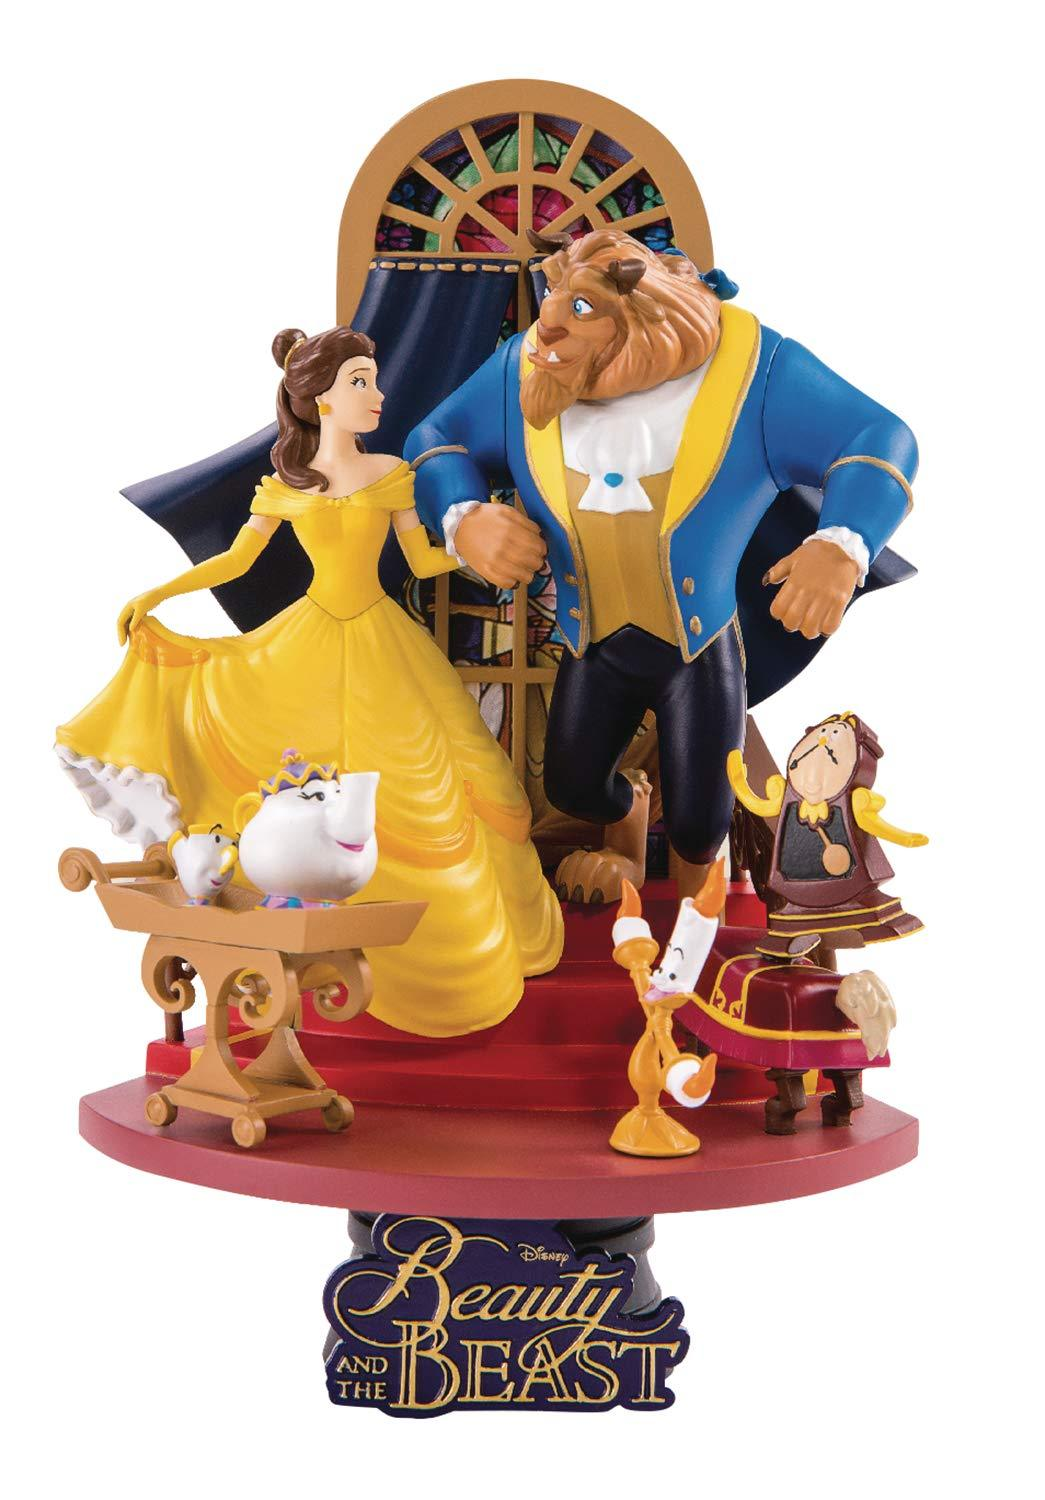 Beauty and the Beast DS-011 Dream Select Series 6-Inch Statue, Beast Kingdom